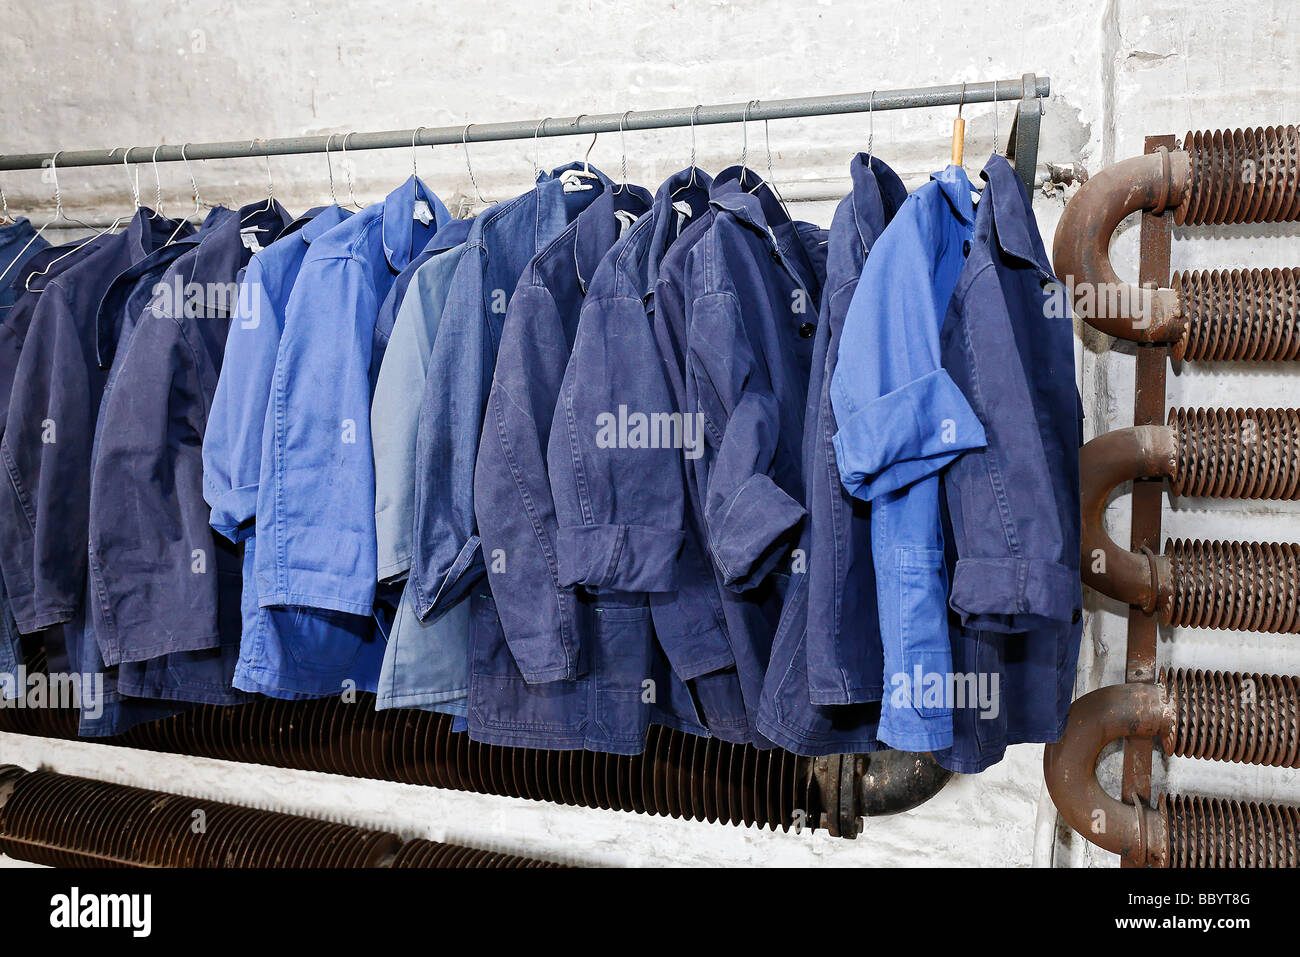 Blue work clothing hanging on a pole former locker room for Locker loop dress shirt